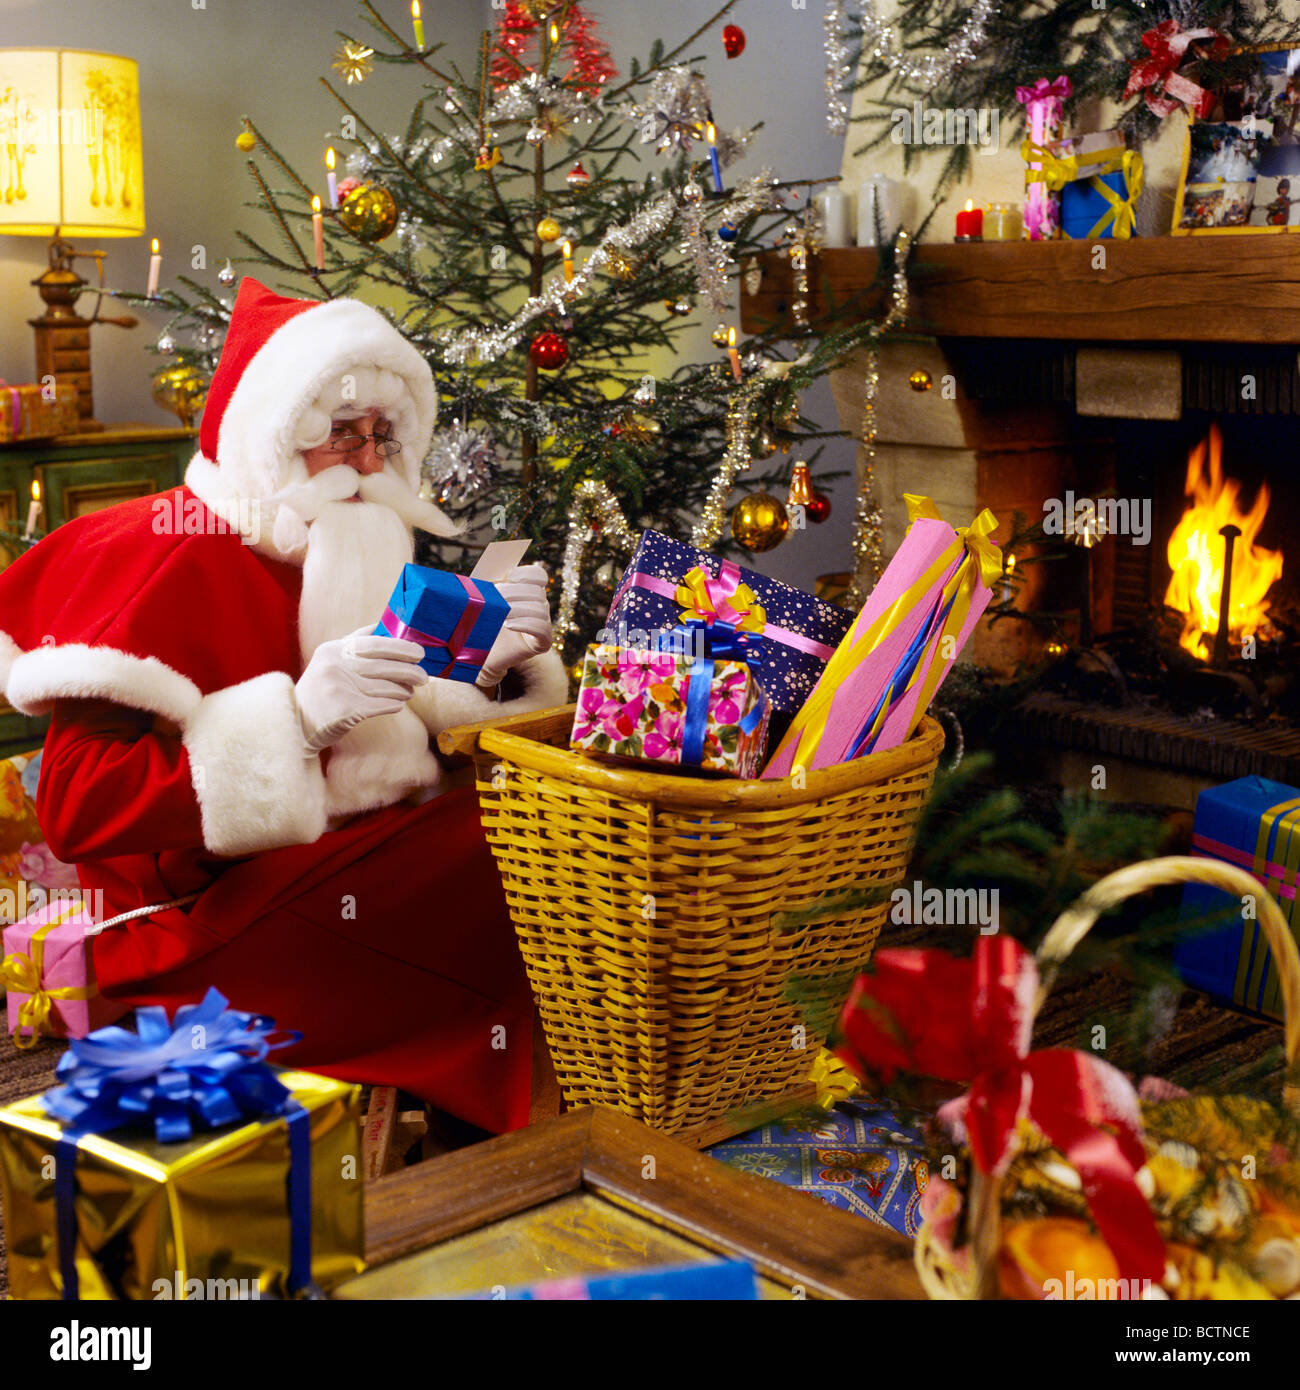 Presents Under The Christmas Tree: MR SANTA CLAUS PREPARING CHRISTMAS PRESENTS UNDER THE TREE